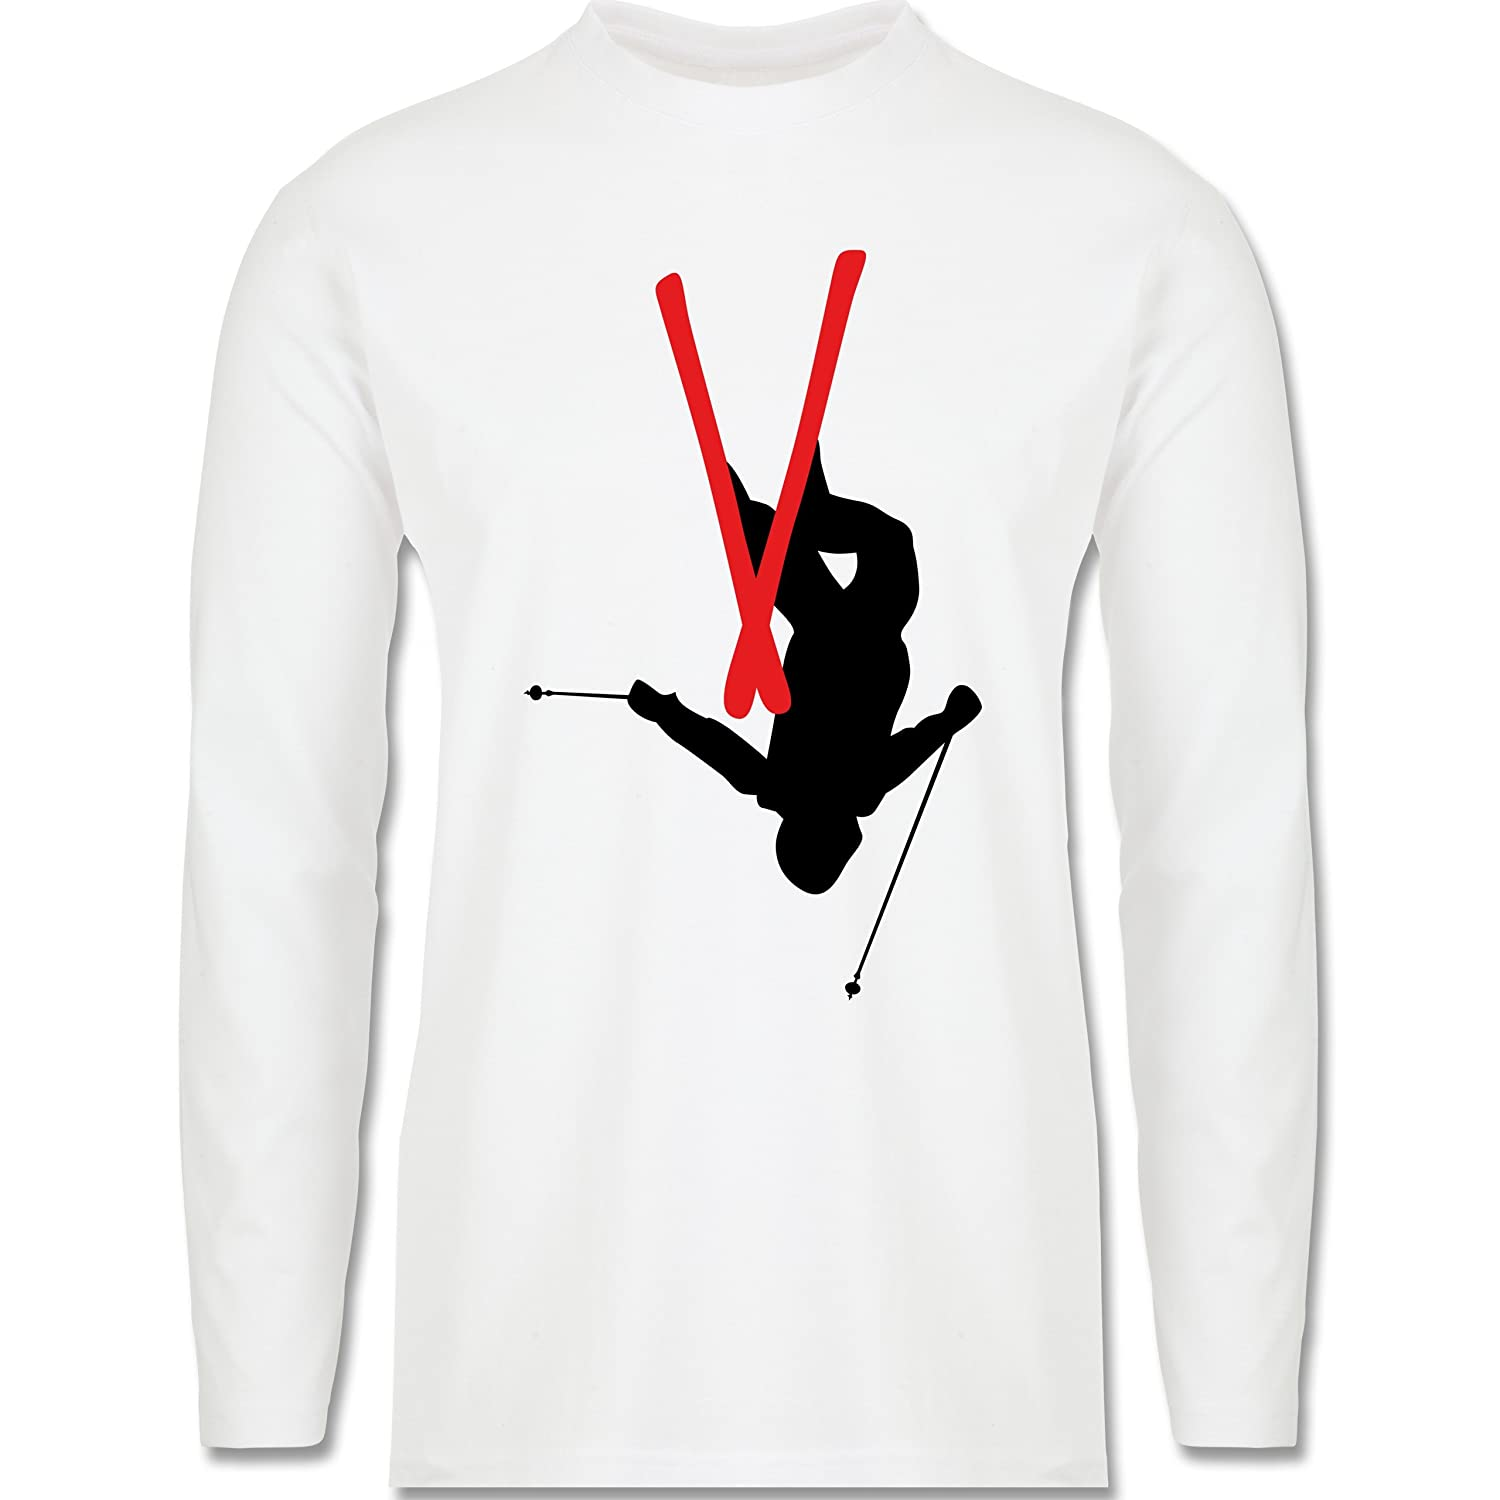 Wintersport - Freestyle Skiing - Freestyle Ski Tricks - Longsleeve / langärmeliges T-Shirt für Herren